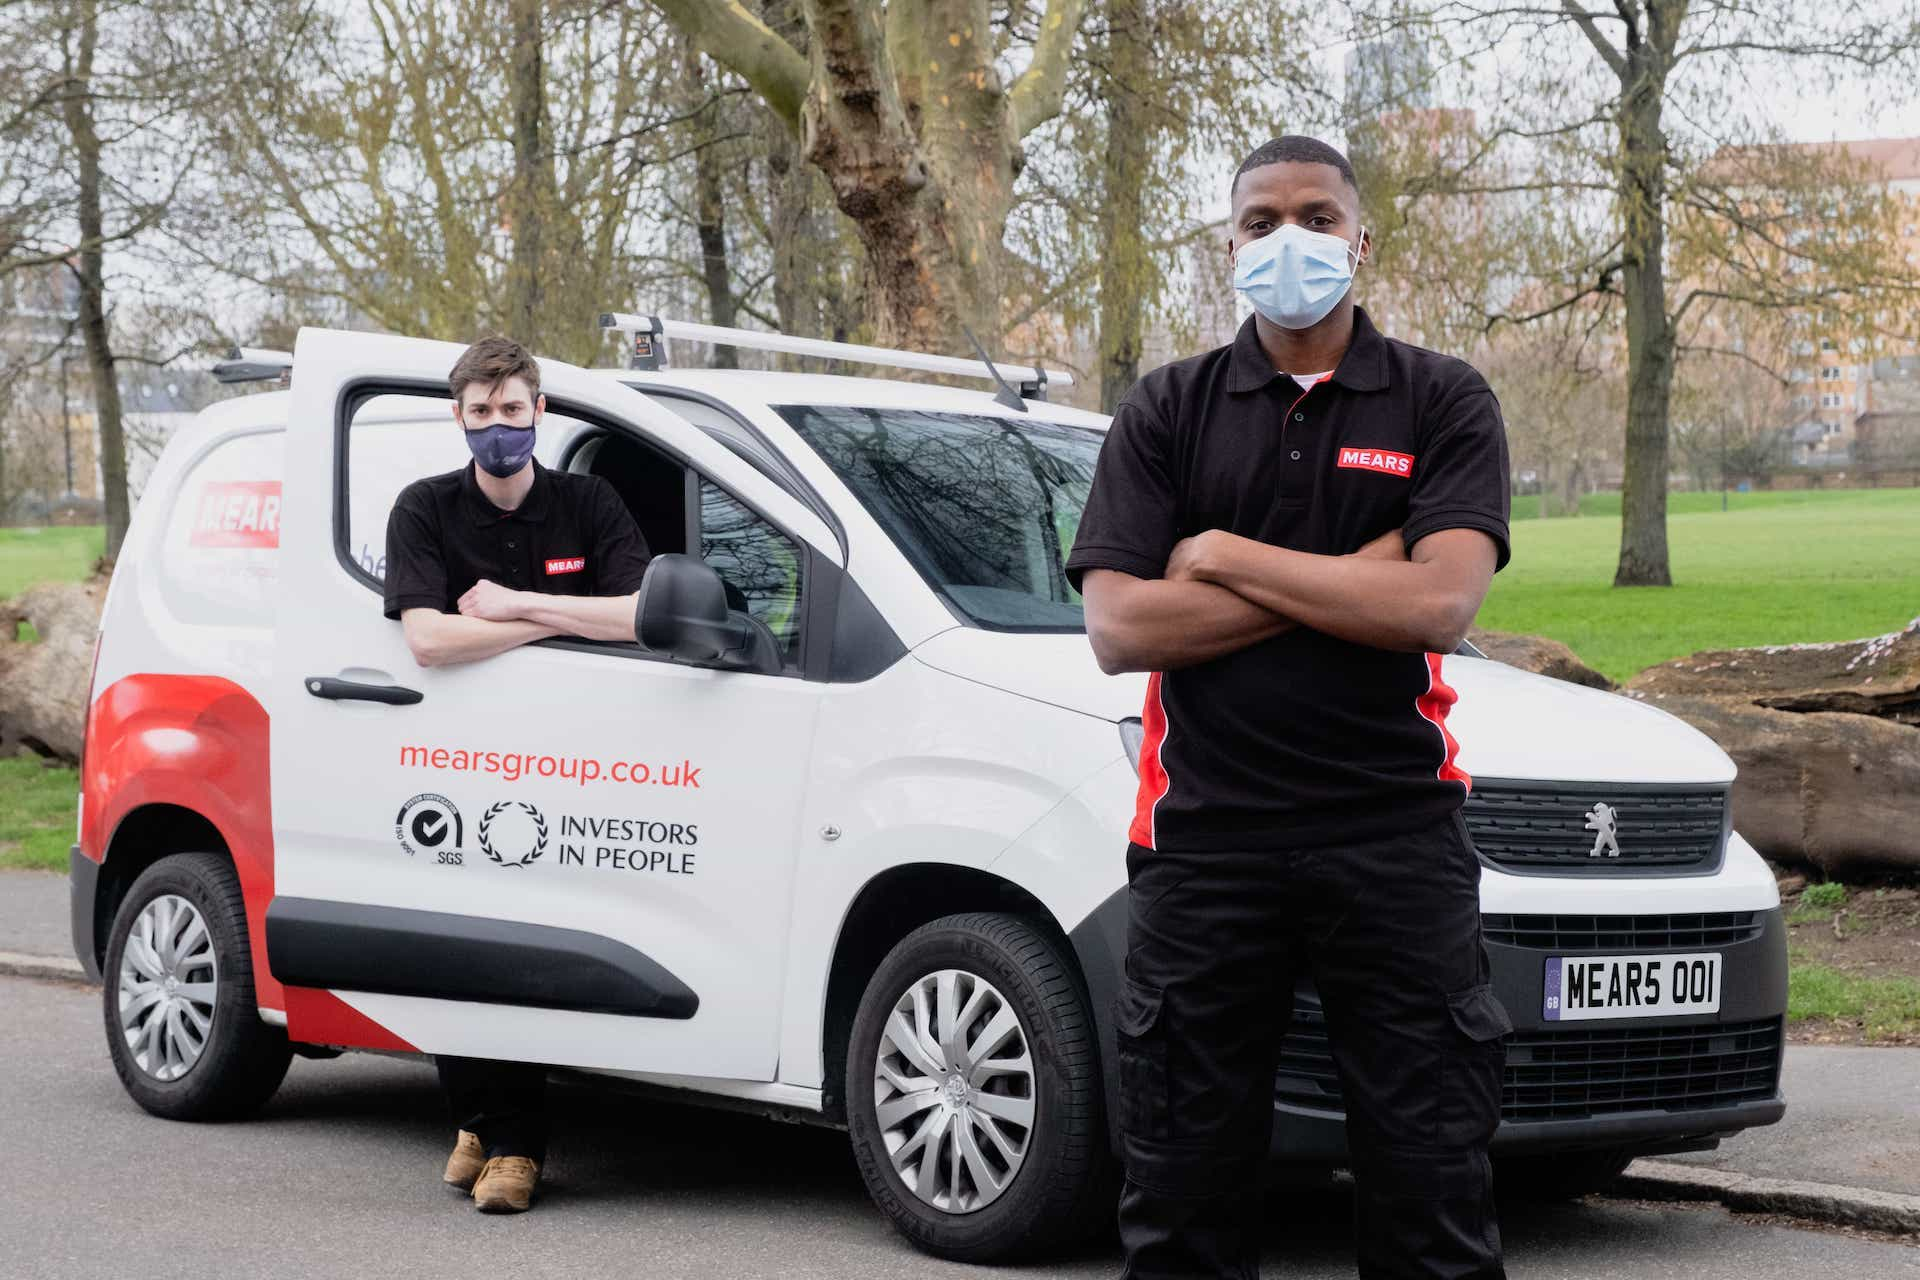 2 mears colleagues stood next to a mears van wearing face masks